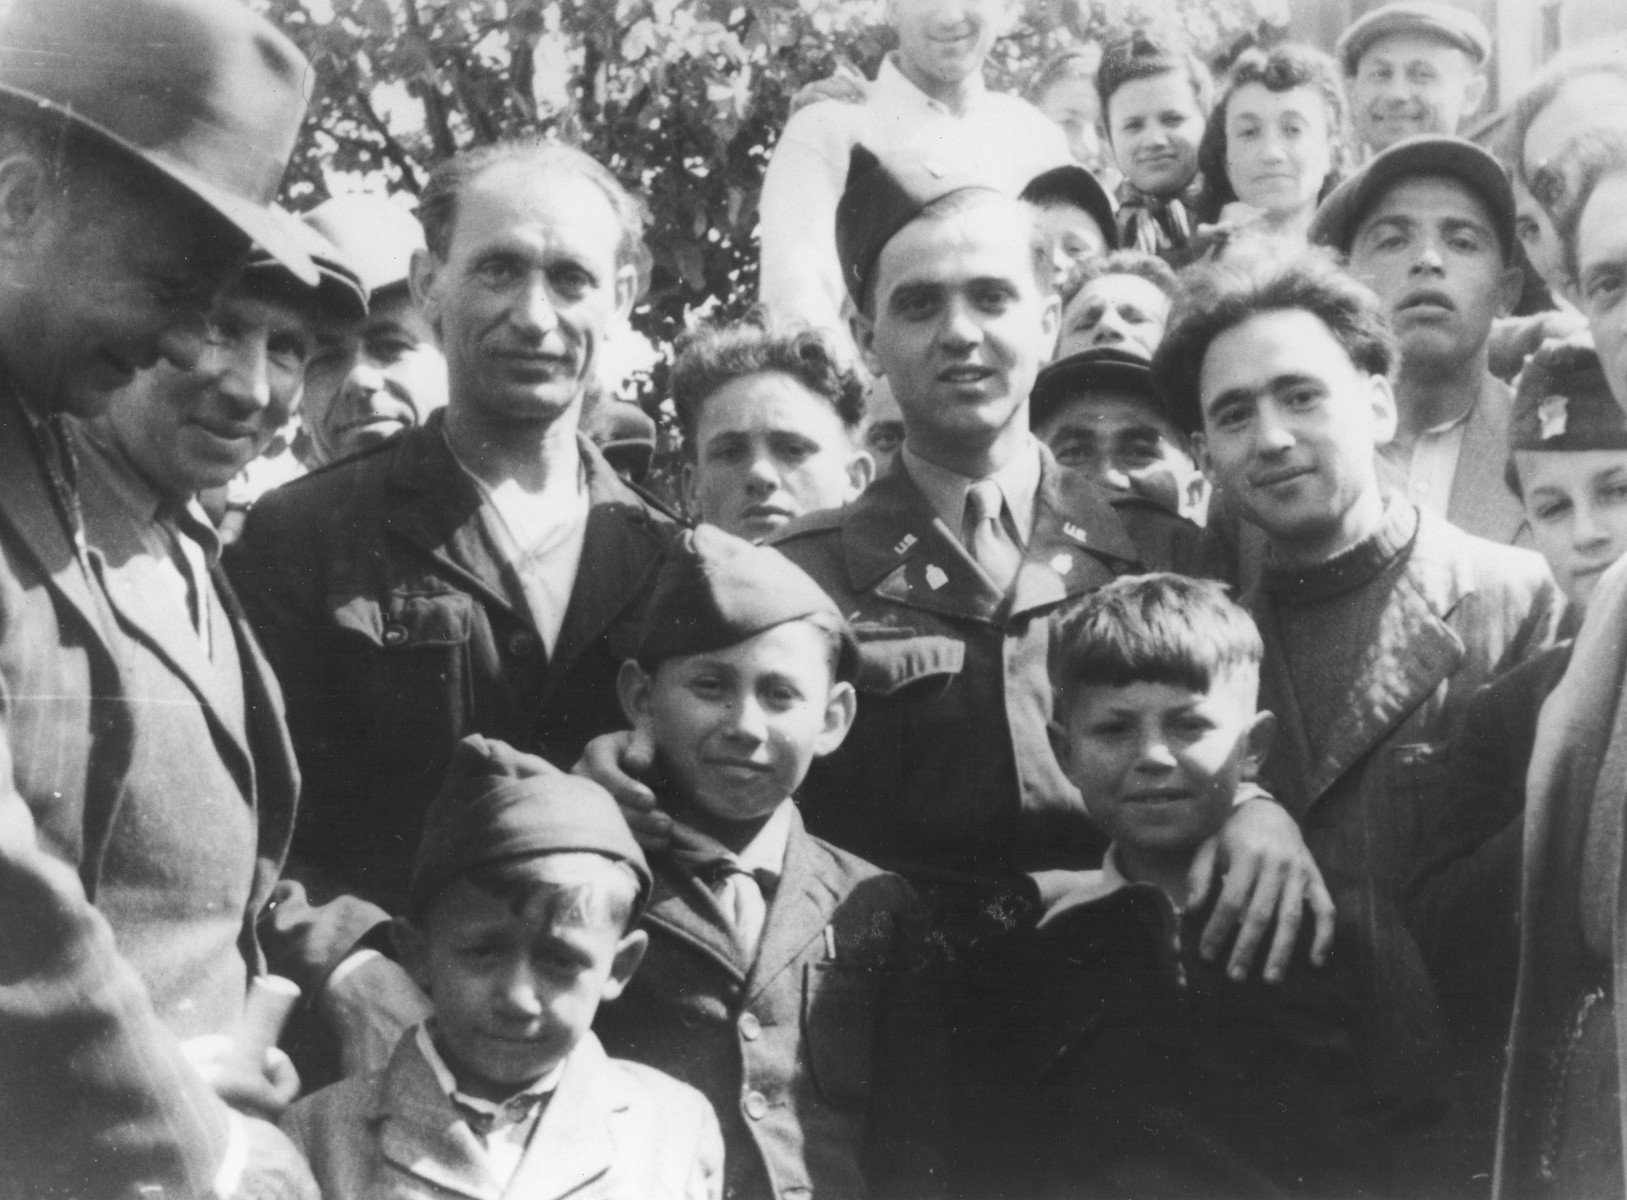 U.S. Army chaplain Rabbi Mayer Abramowitz poses with a group of adults and children at a summer camp for Jewish DP children in the Grunewald Forest.